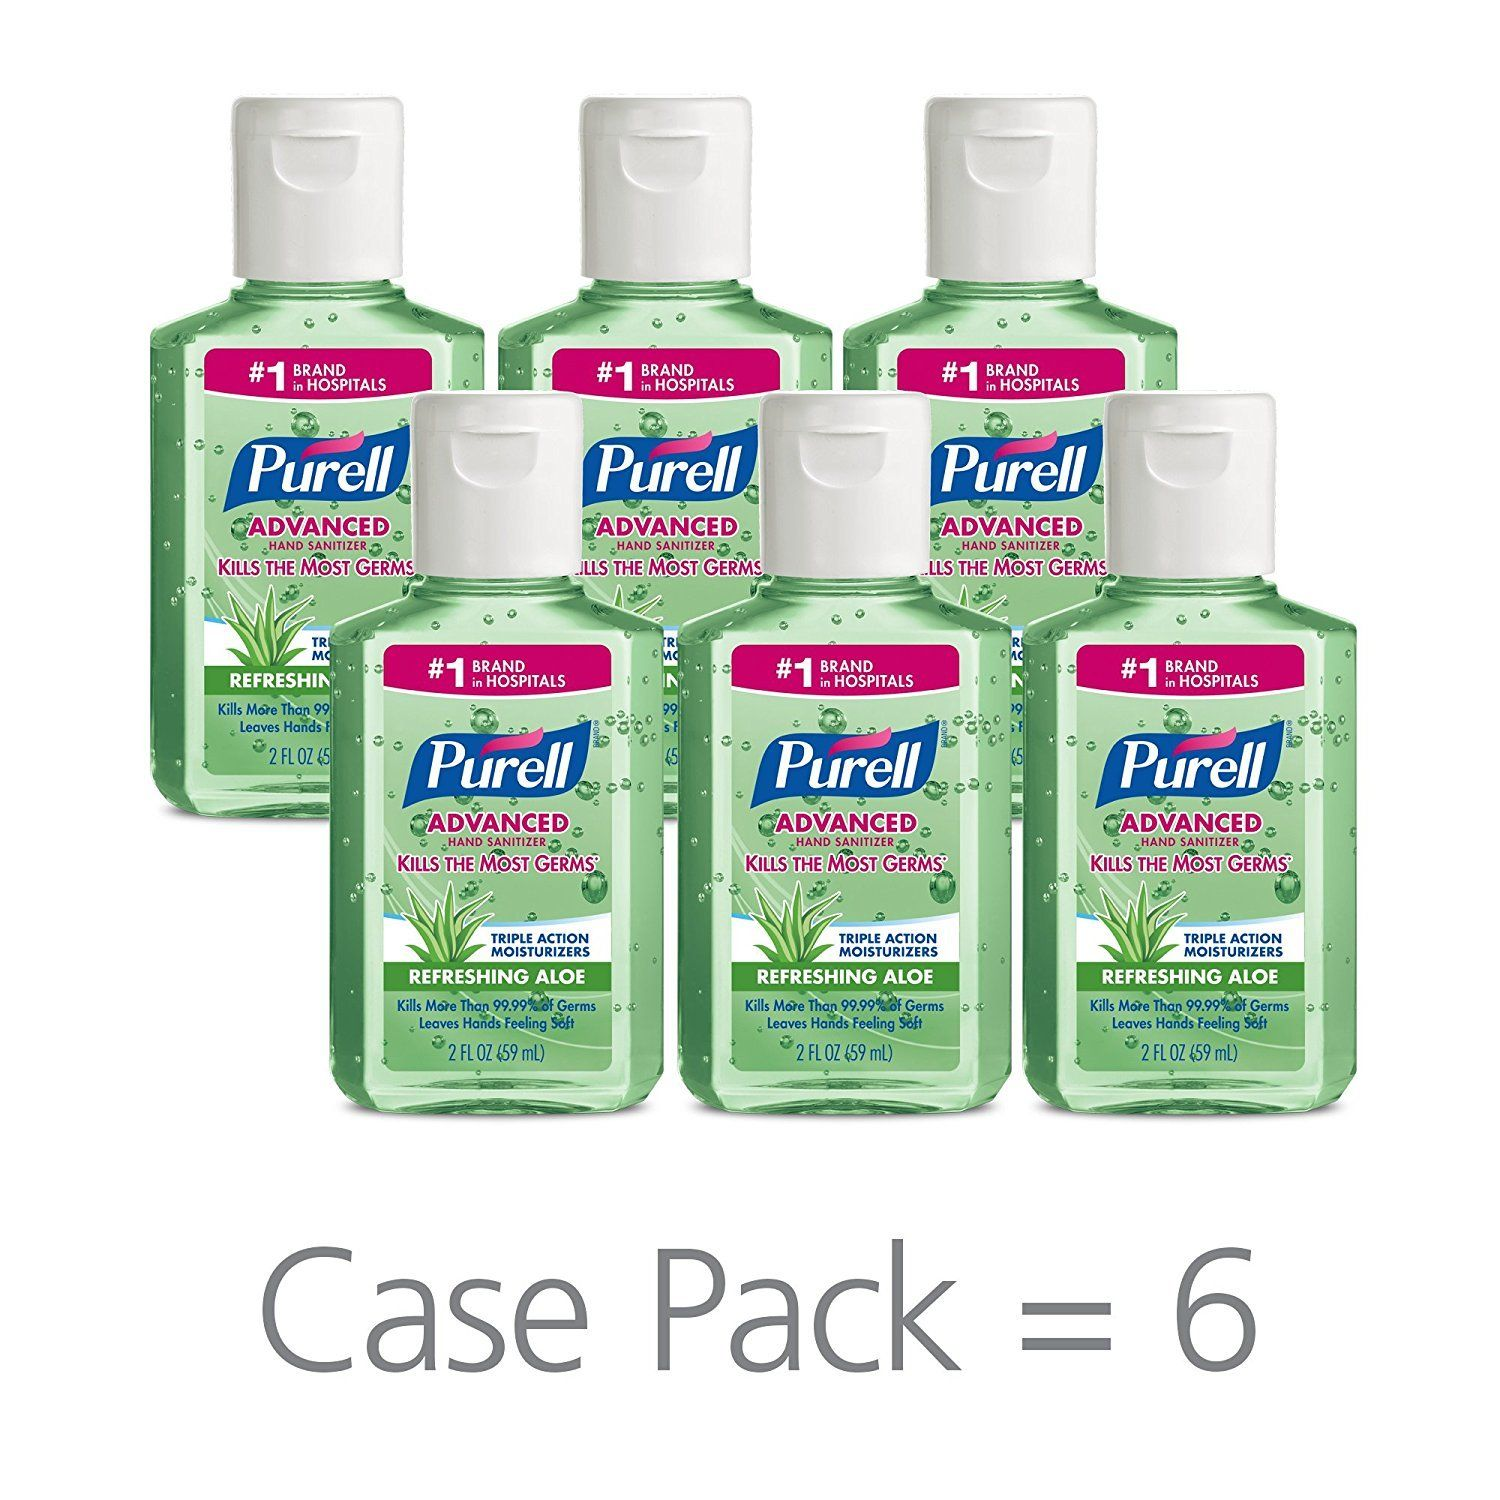 Purell Advanced Aloe Vera Gel Hand Sanitizer 2 Oz Pack Of 6